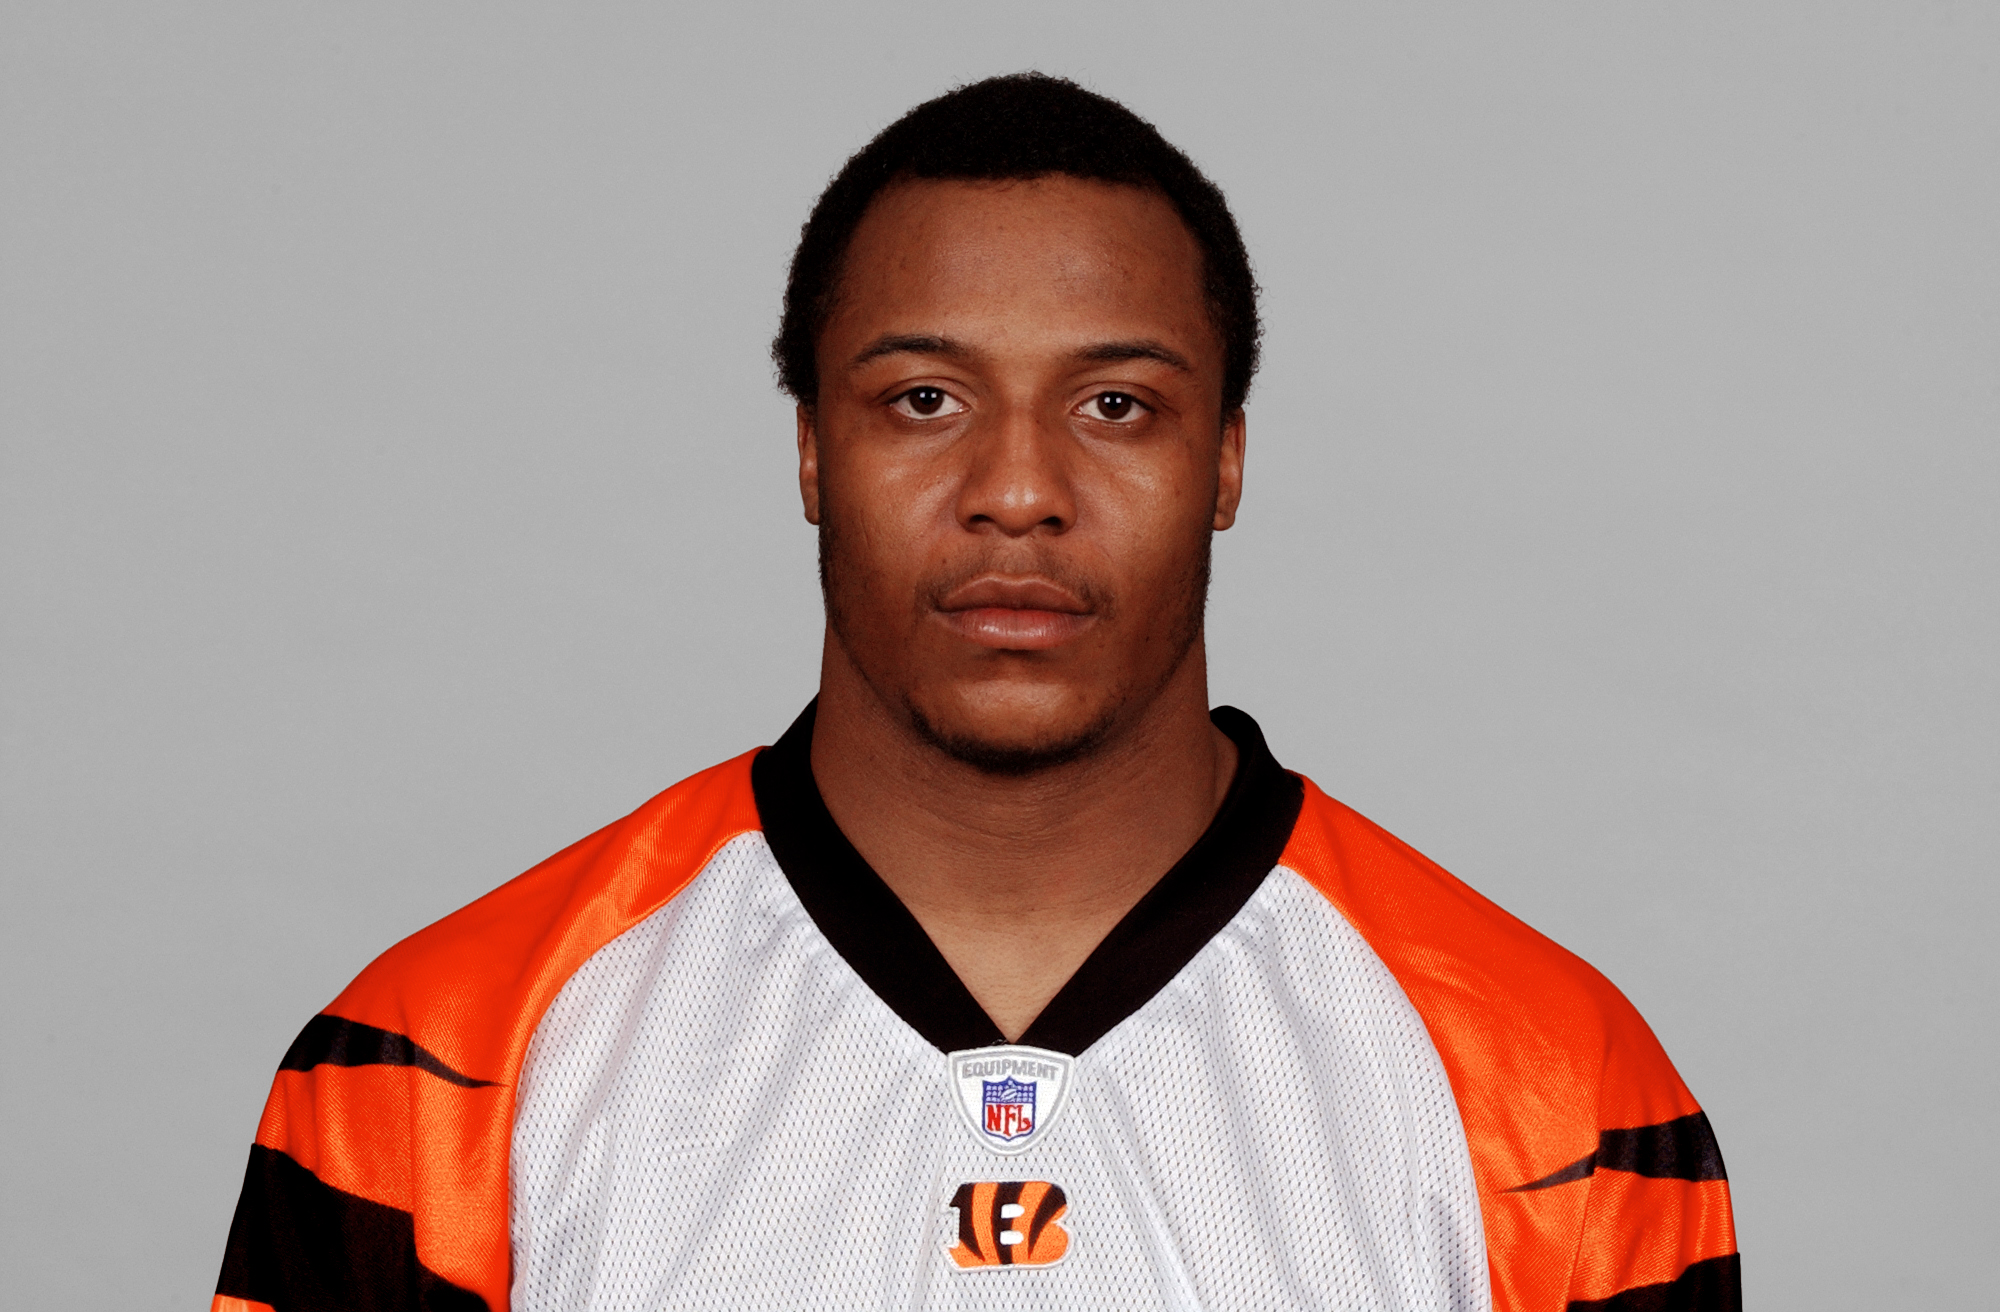 Former NFL player Terrell Roberts fatally shot in NorCal